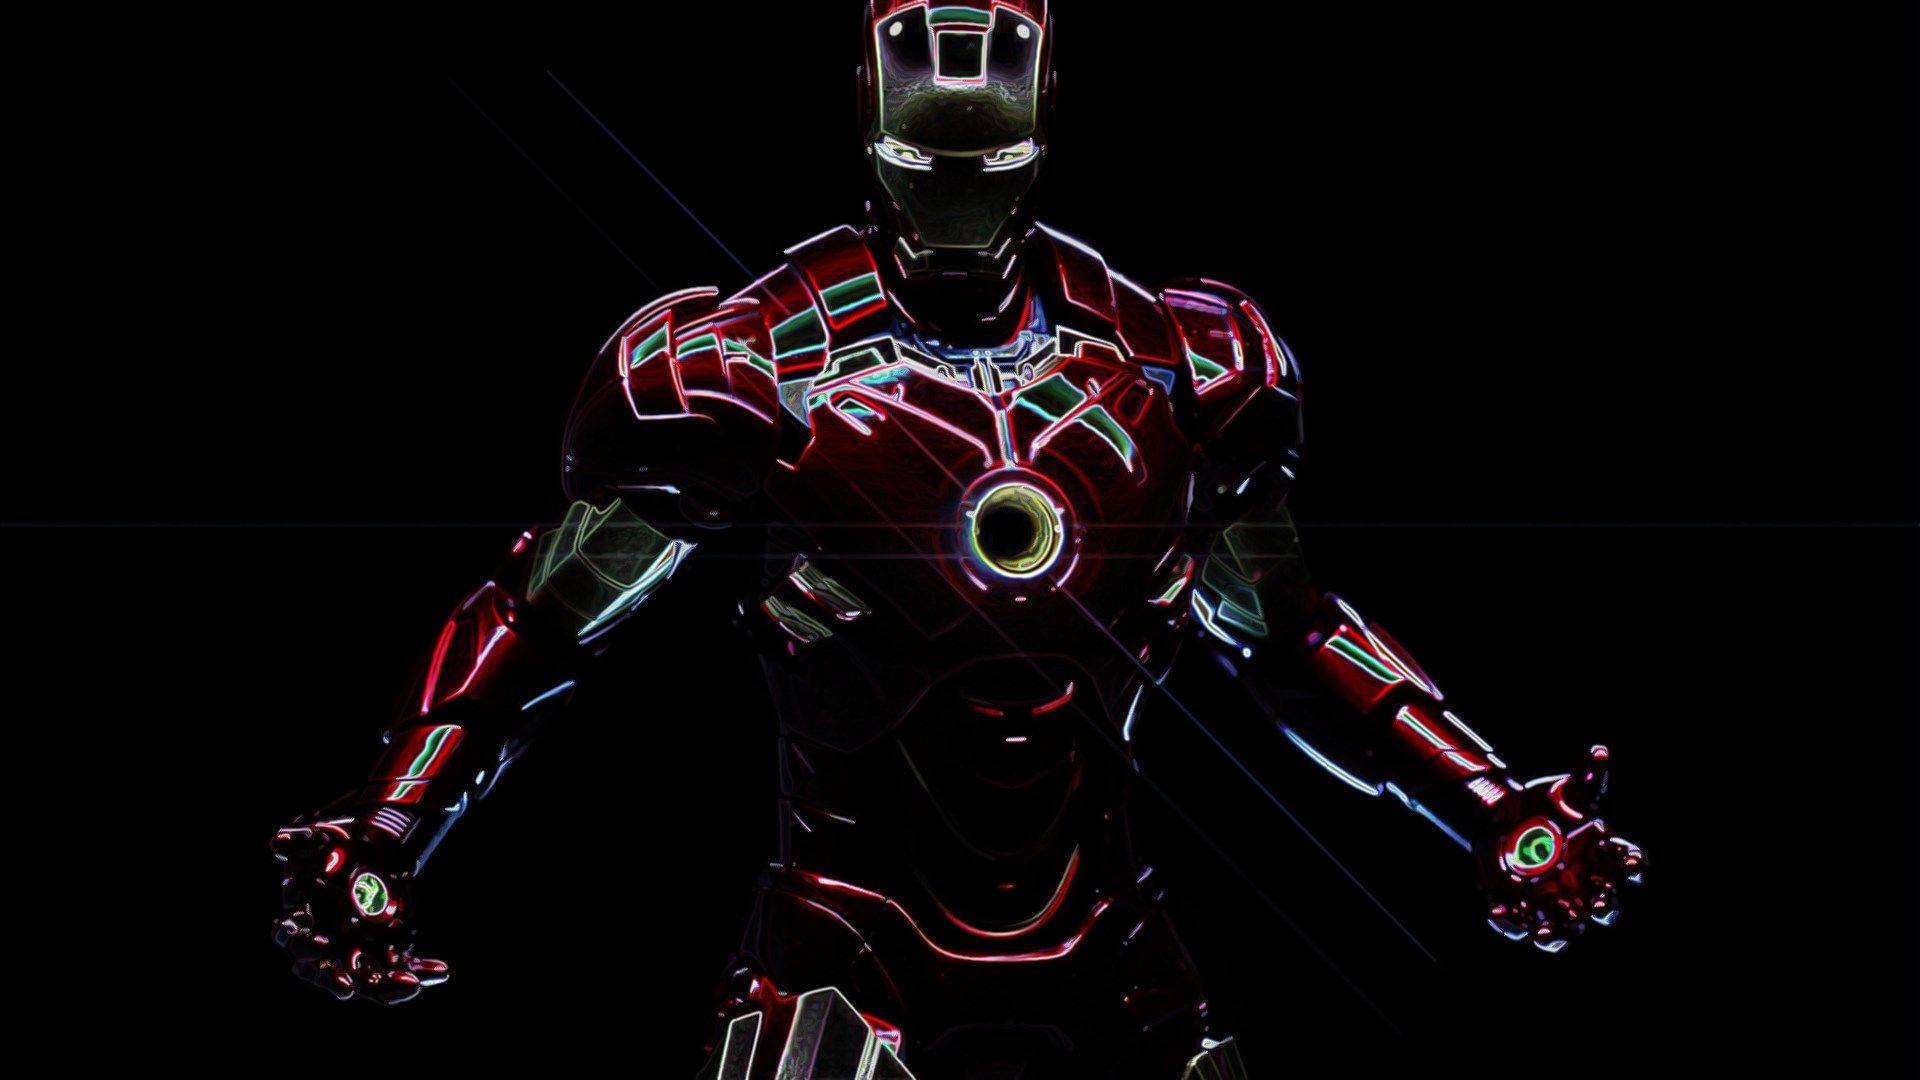 free screensaver wallpapers for iron man Araminta Black 2017 03 22